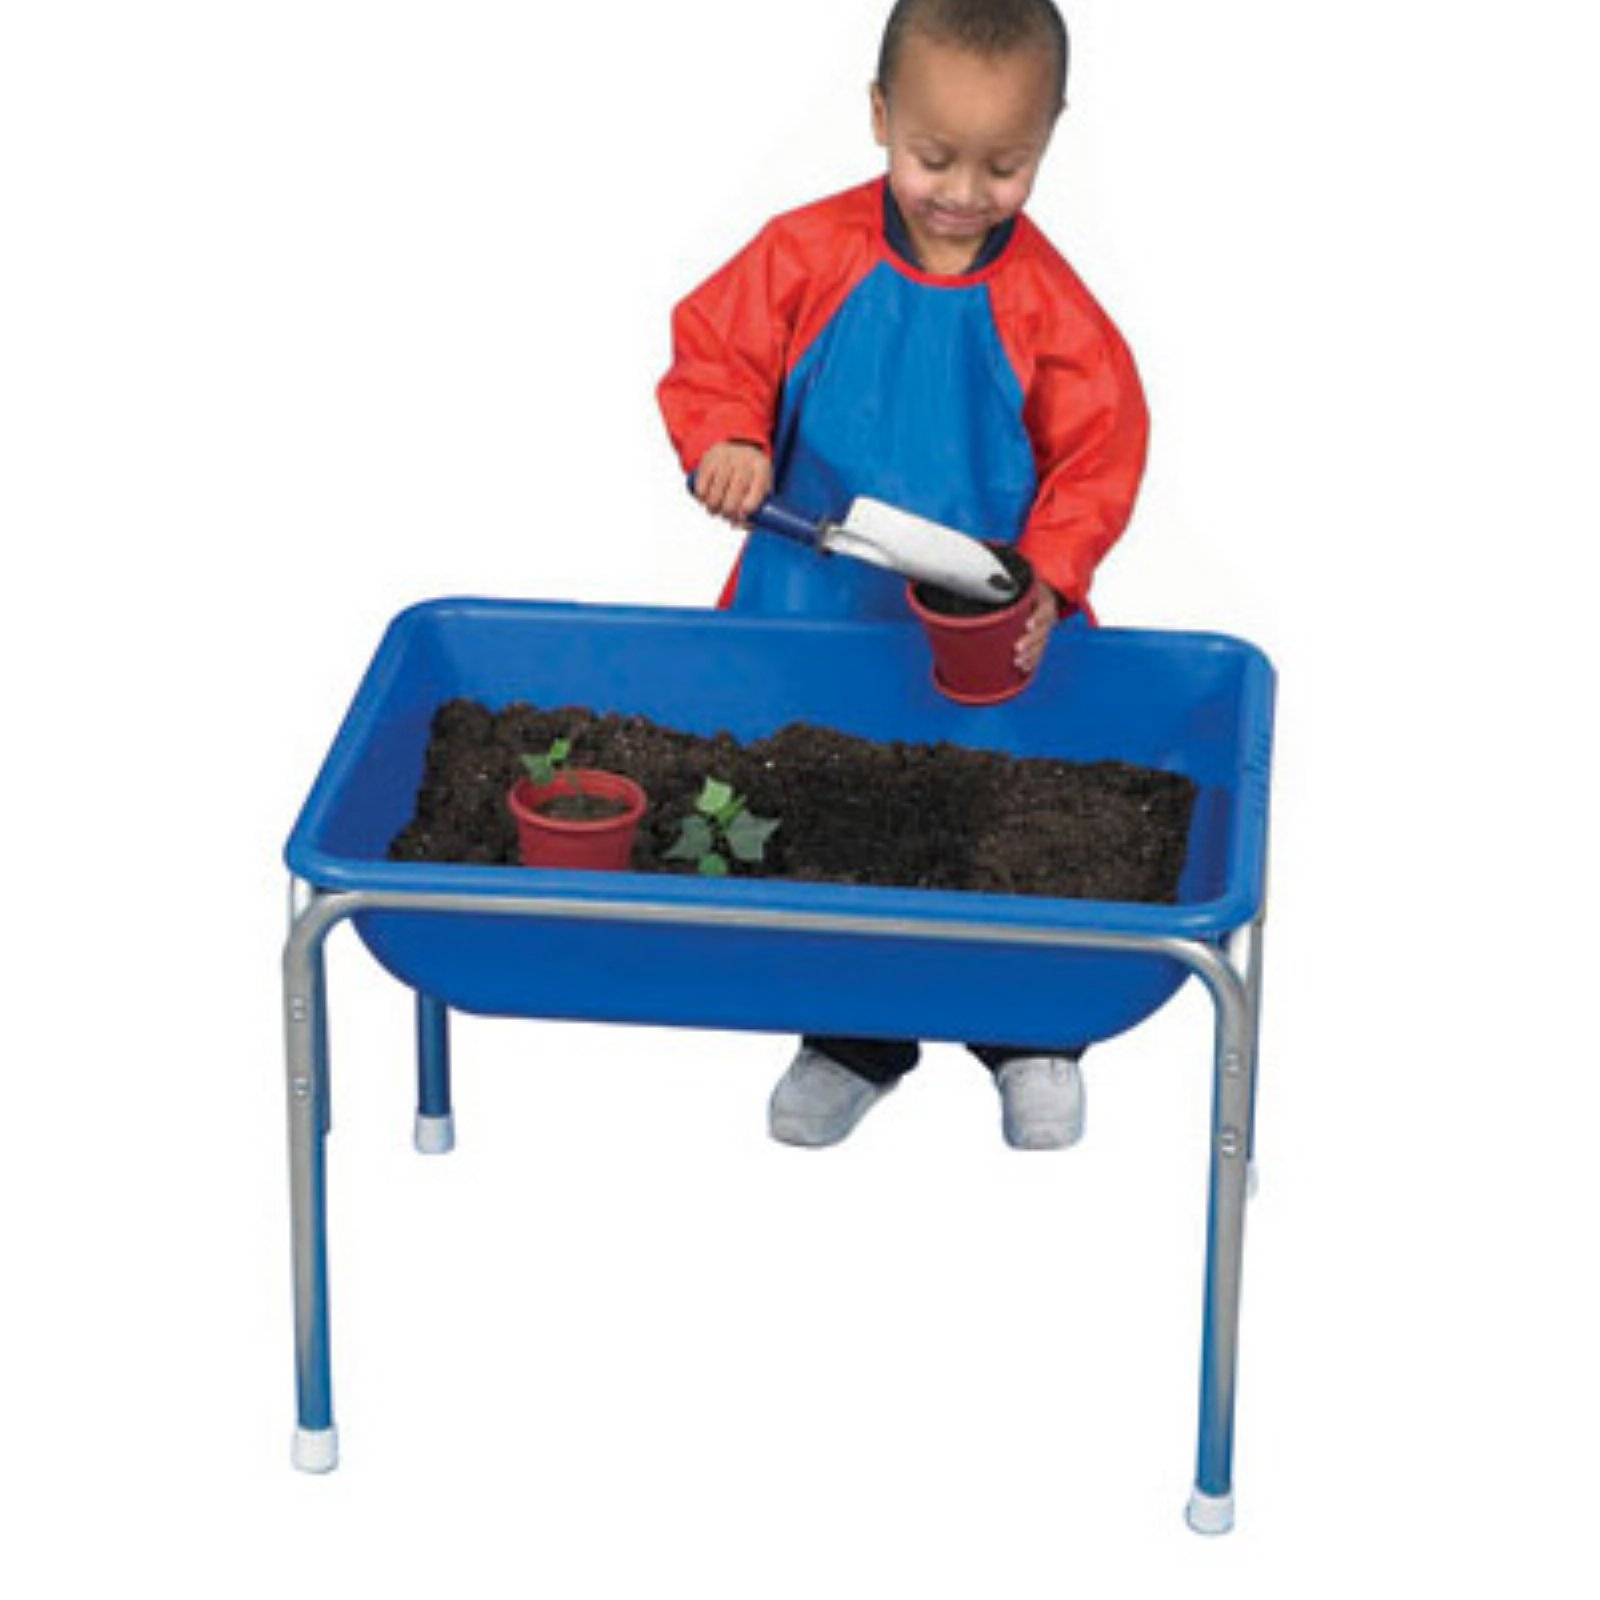 Children's Factory Small Sensory Table